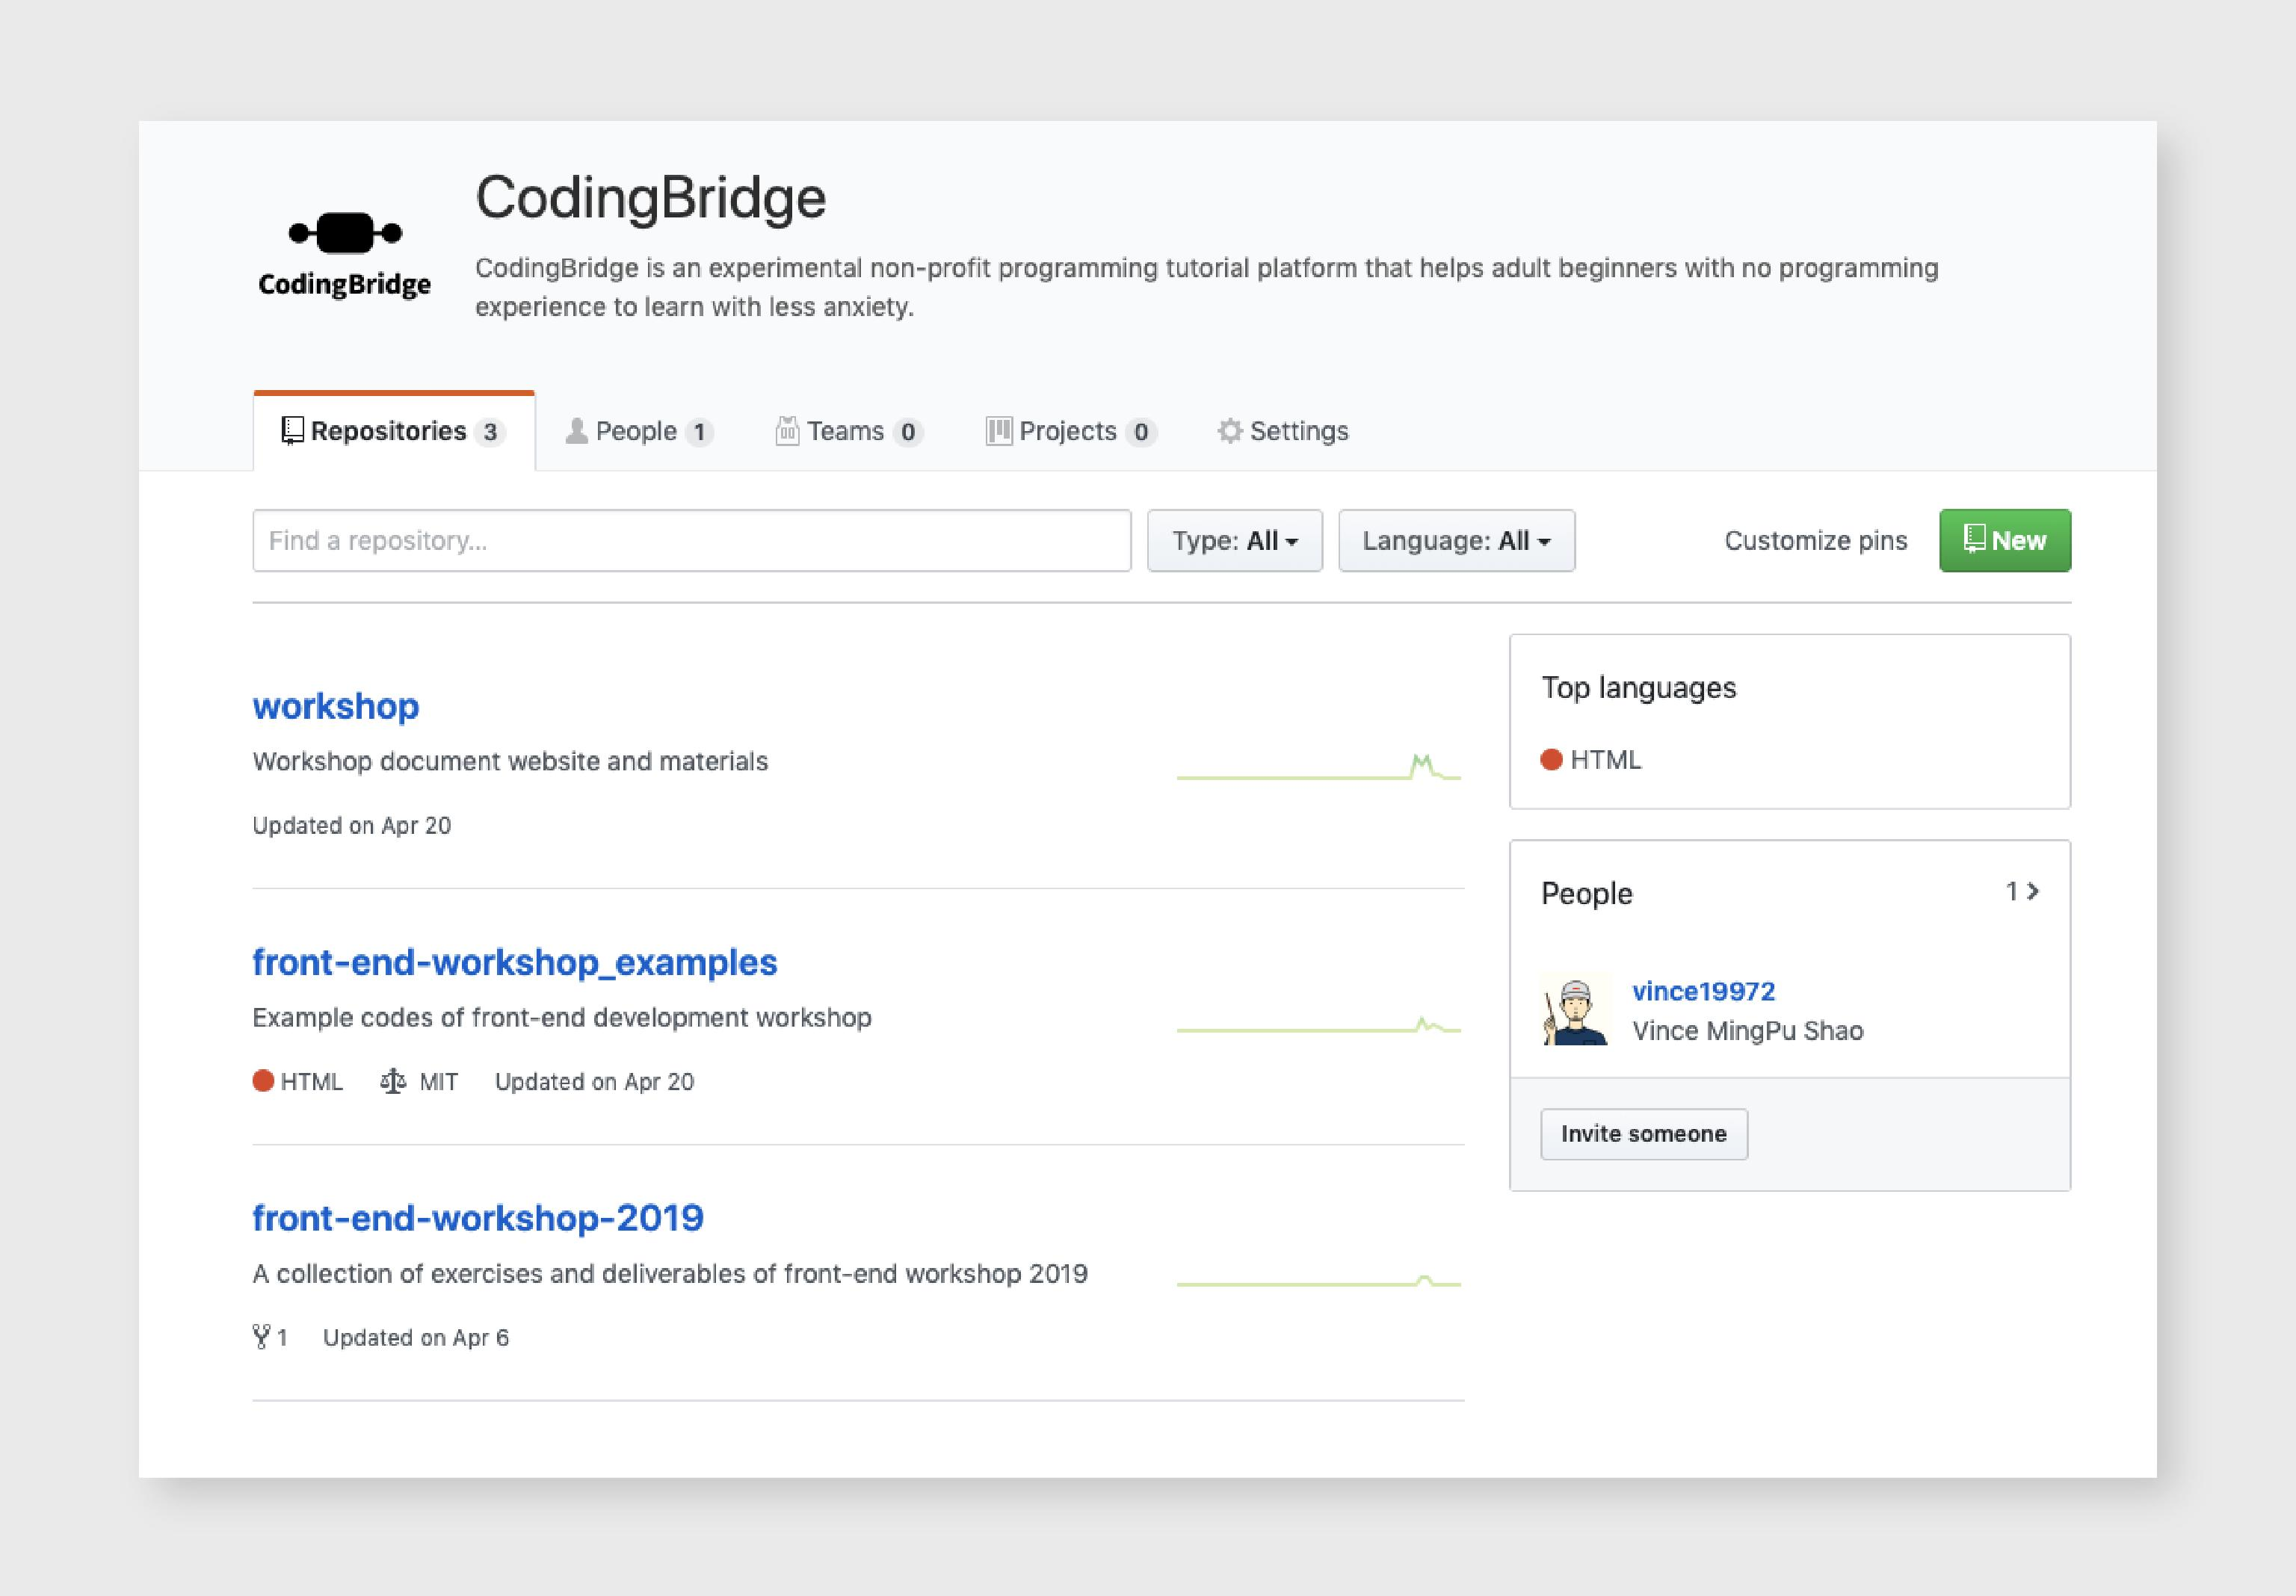 CodingBridge organization repo